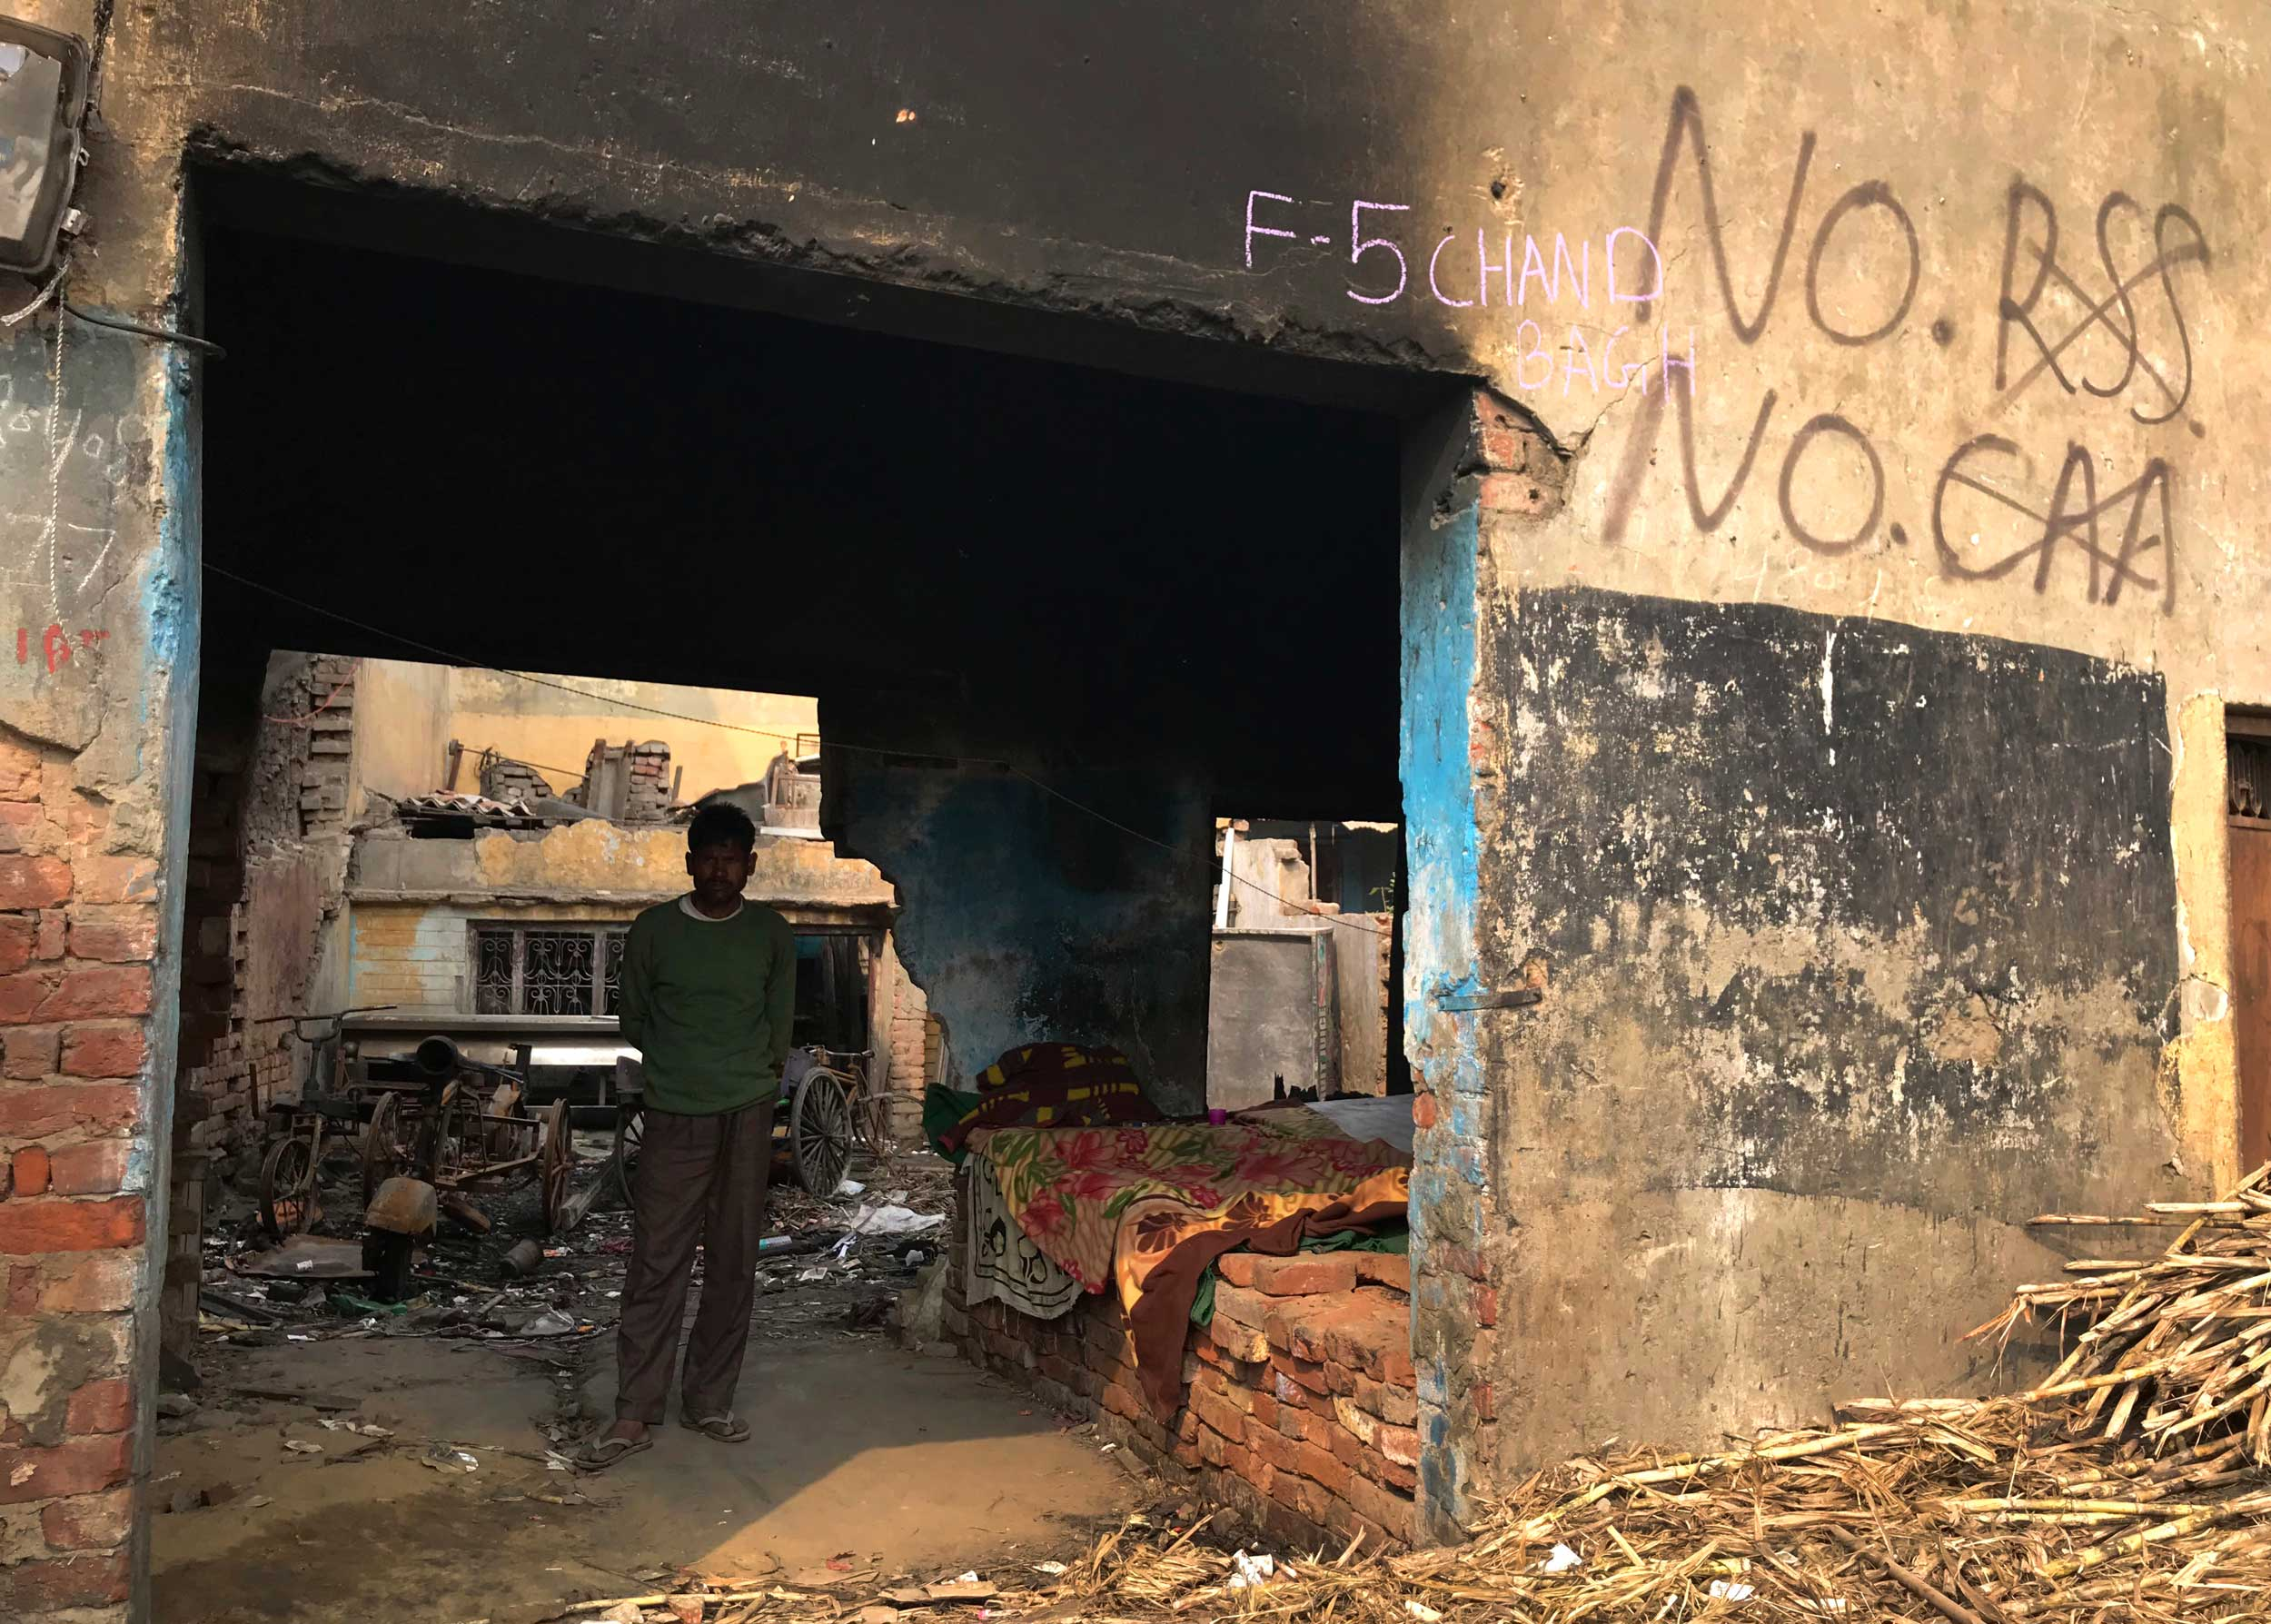 A rickshaw puller stands in front of his rented house burned and ransacked during last week's riots in New Delhi on Monday.